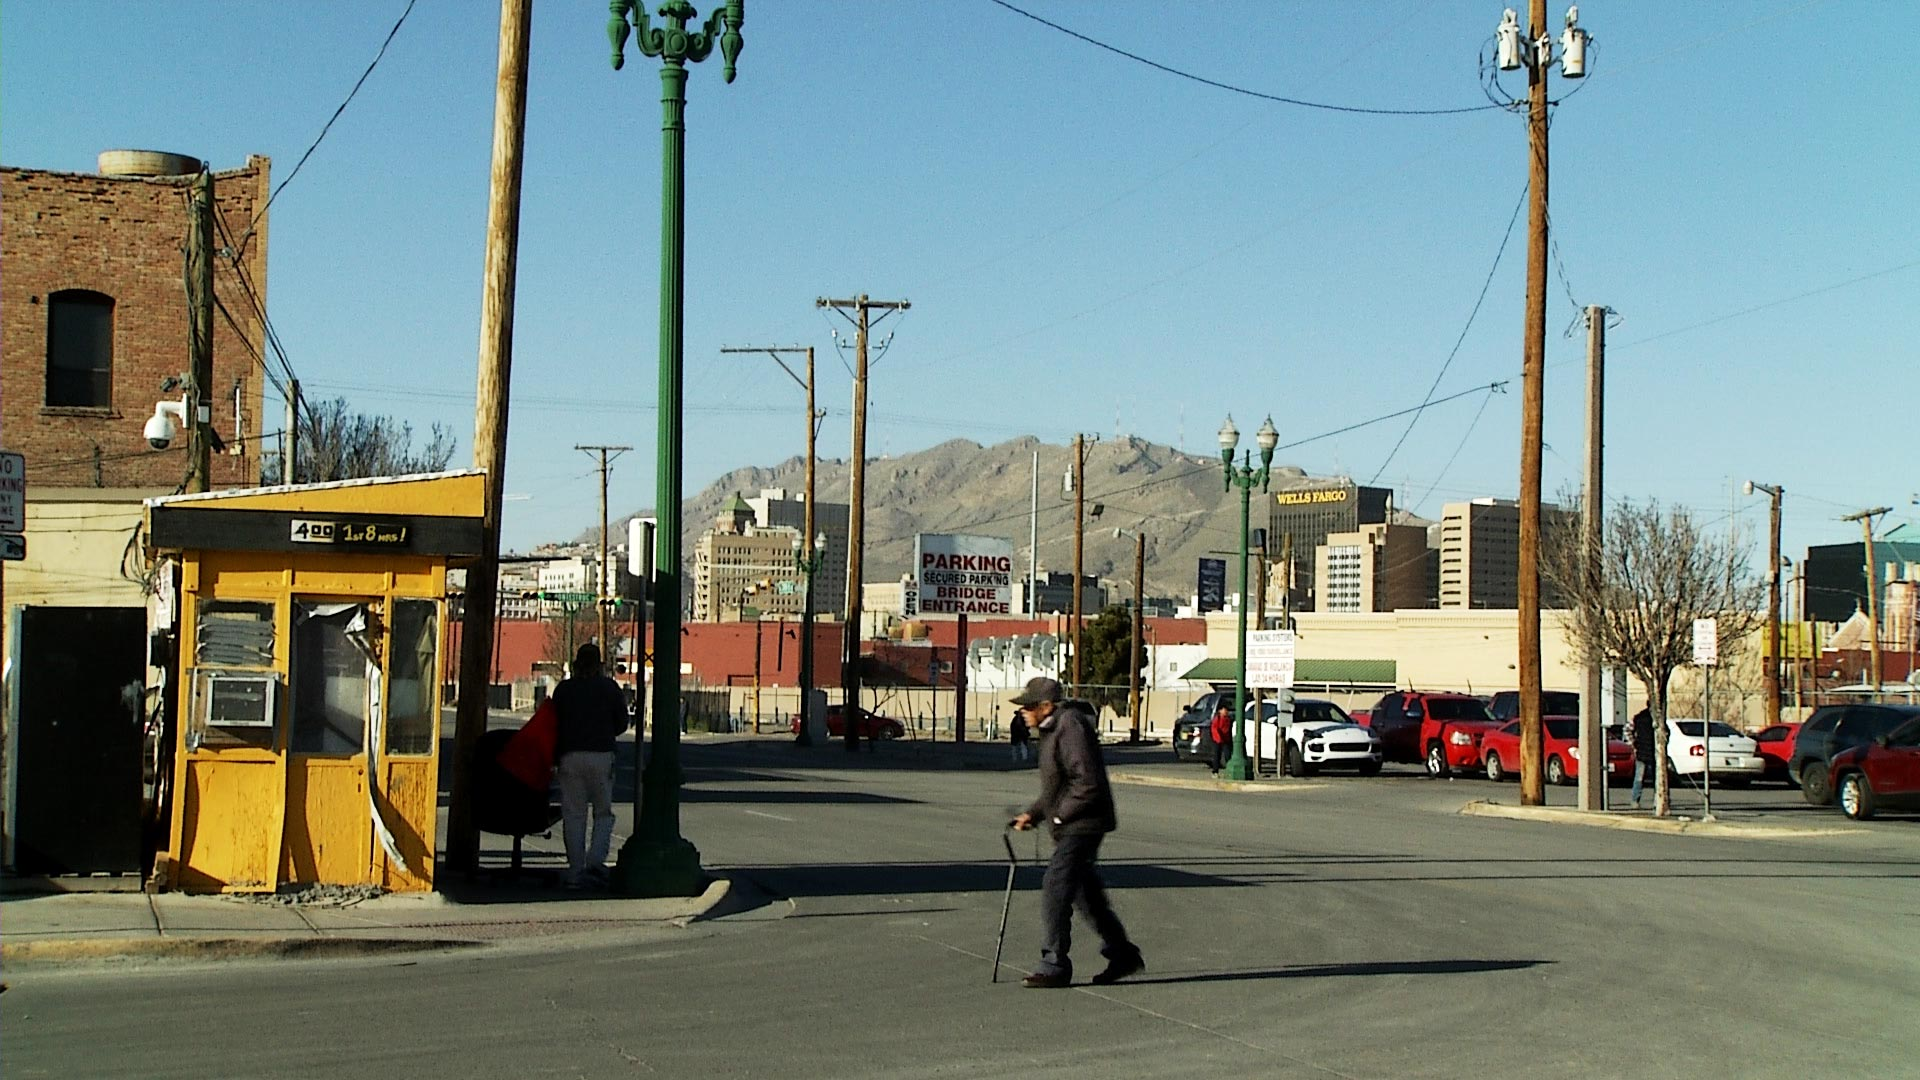 A man using a can crosses the road on the outskirts of downtown El Paso on February 11, 2019.